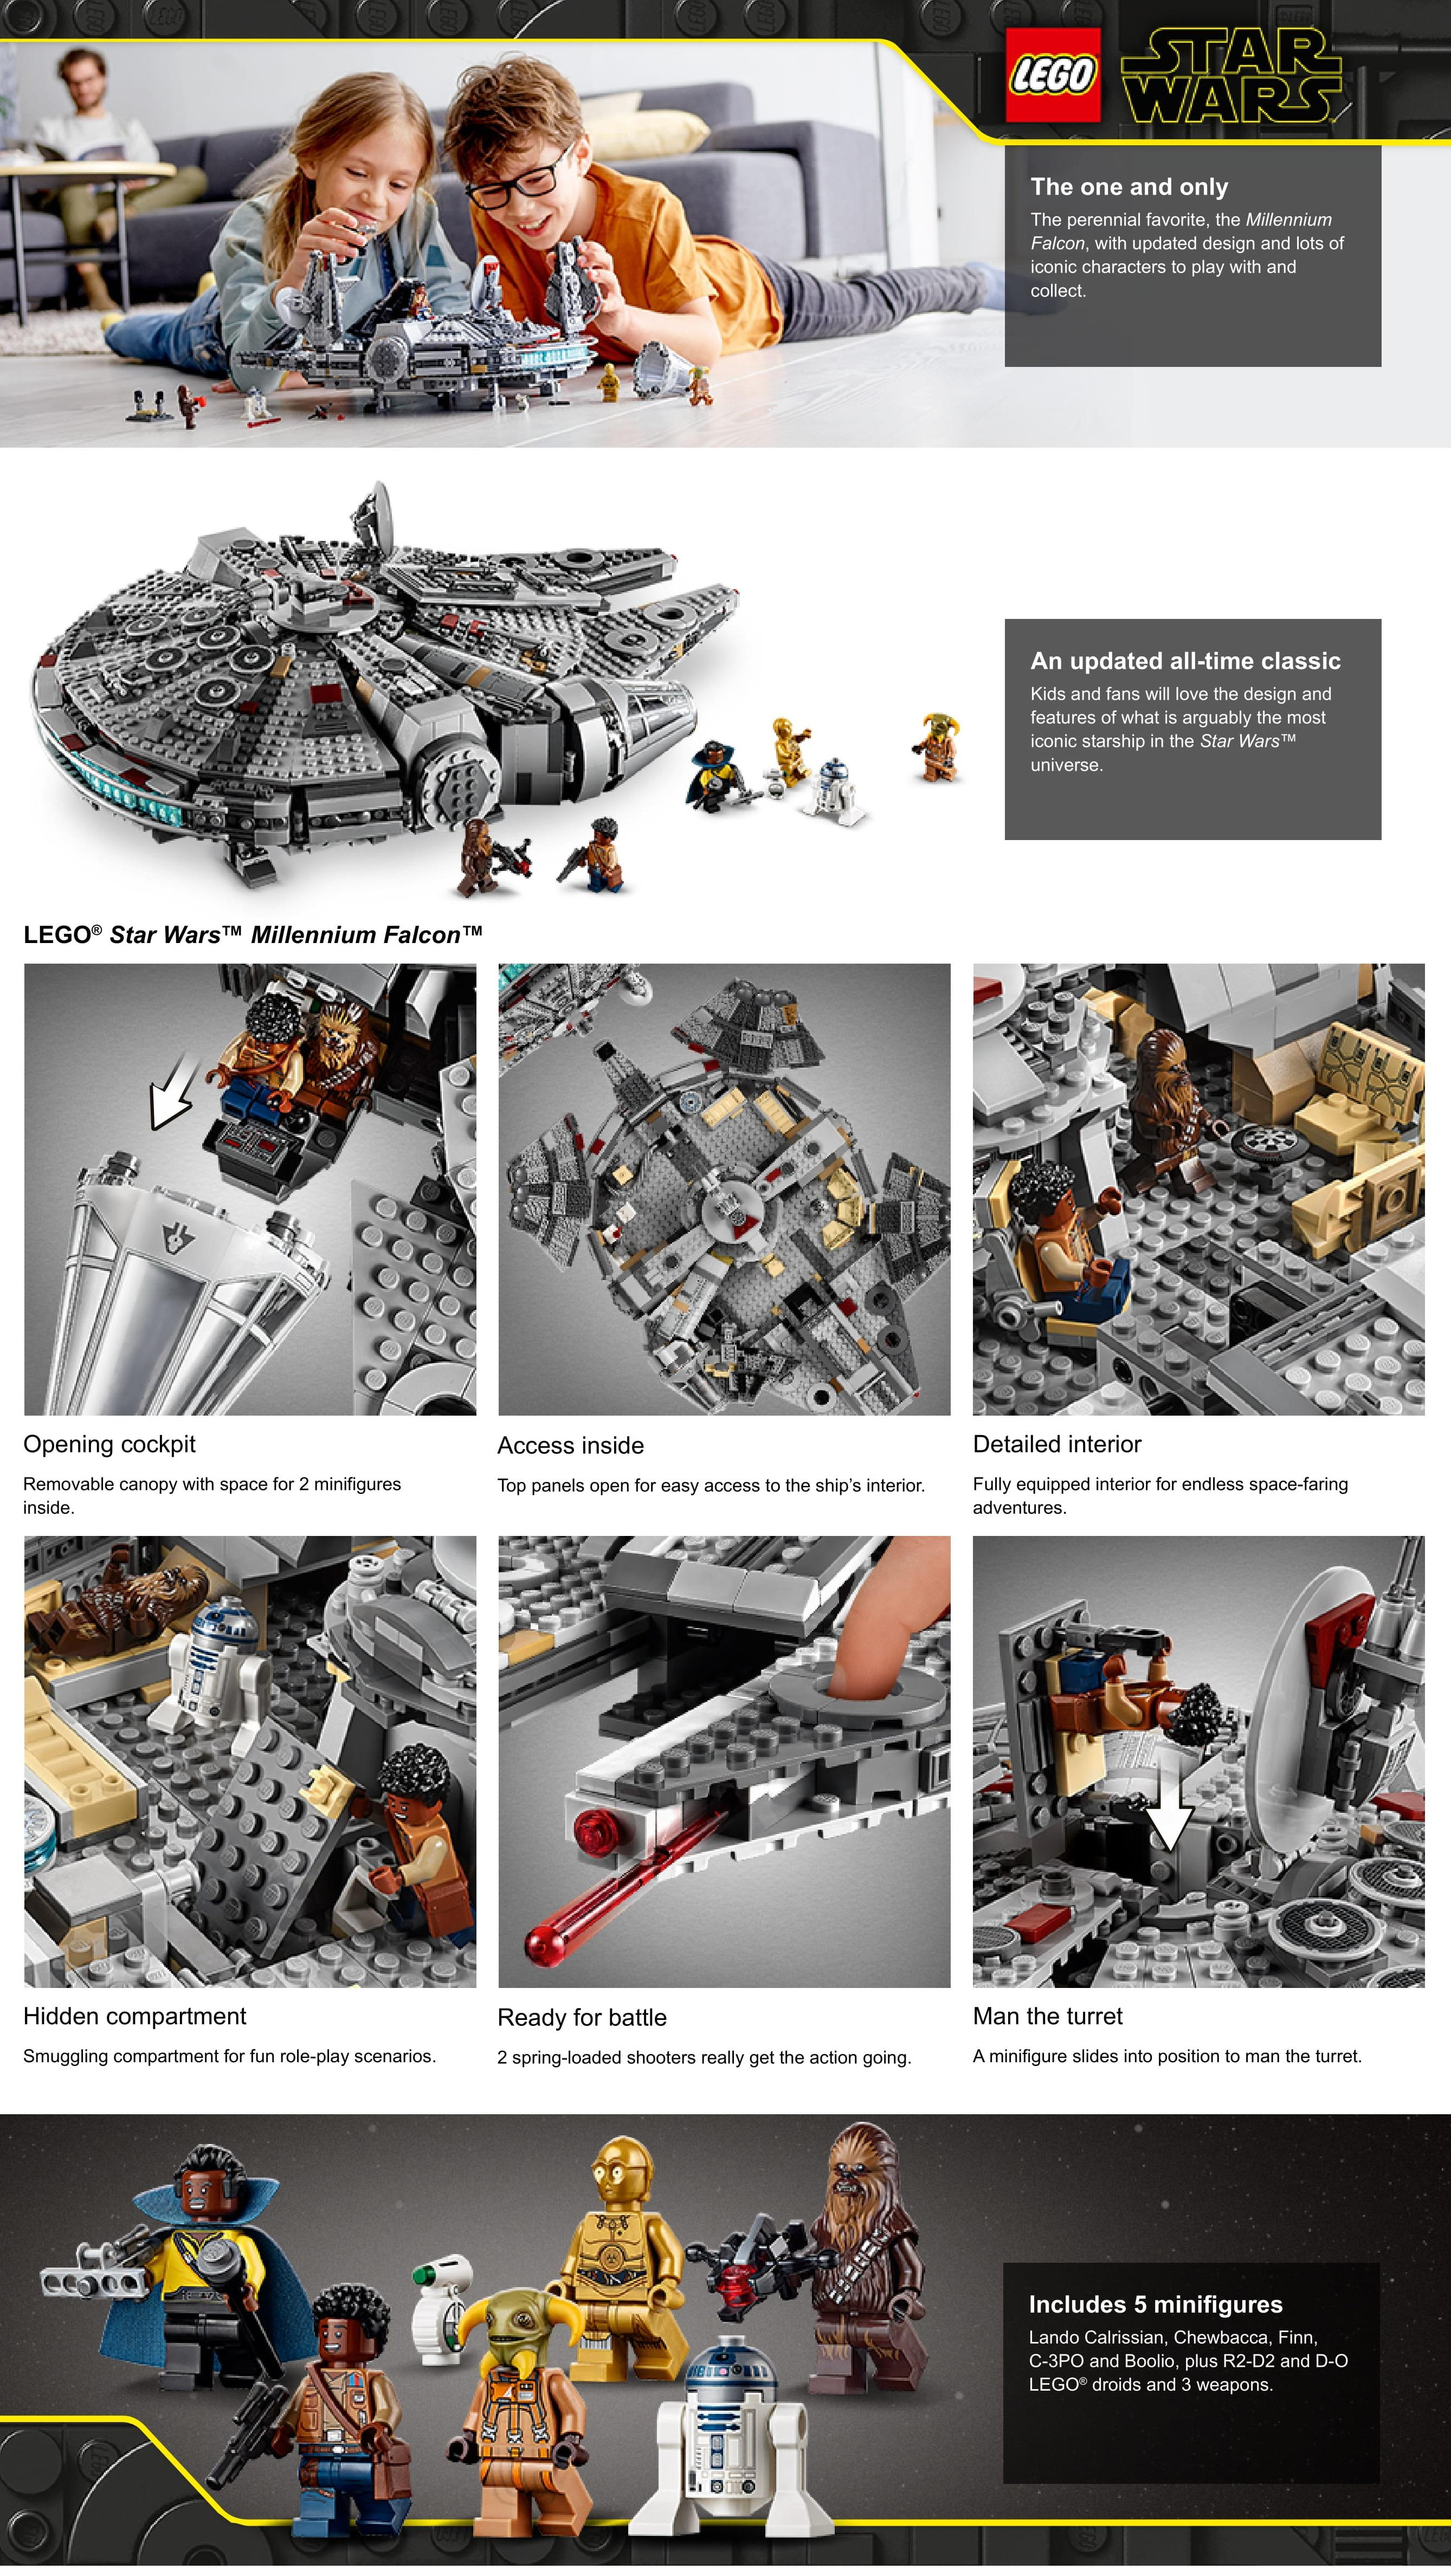 Lego Star Wars The Rise Of Skywalker Millennium Falcon 75257 Starship Model Building Kit And Minifigures 1 351 Pieces Lazada Singapore